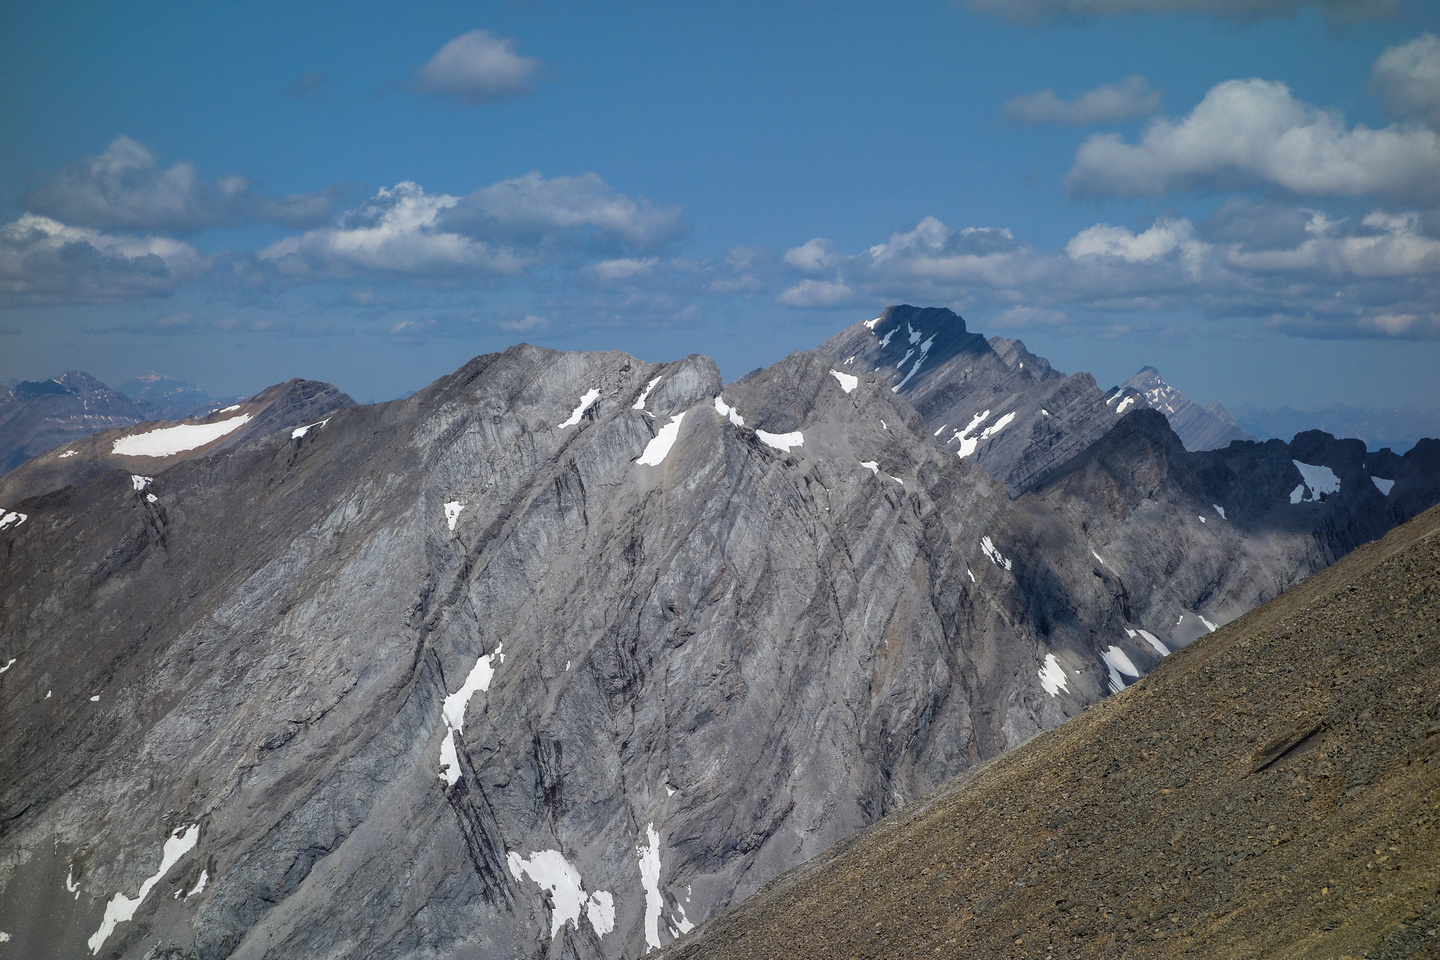 Mount Sir Douglas with Mount French in the foreground.